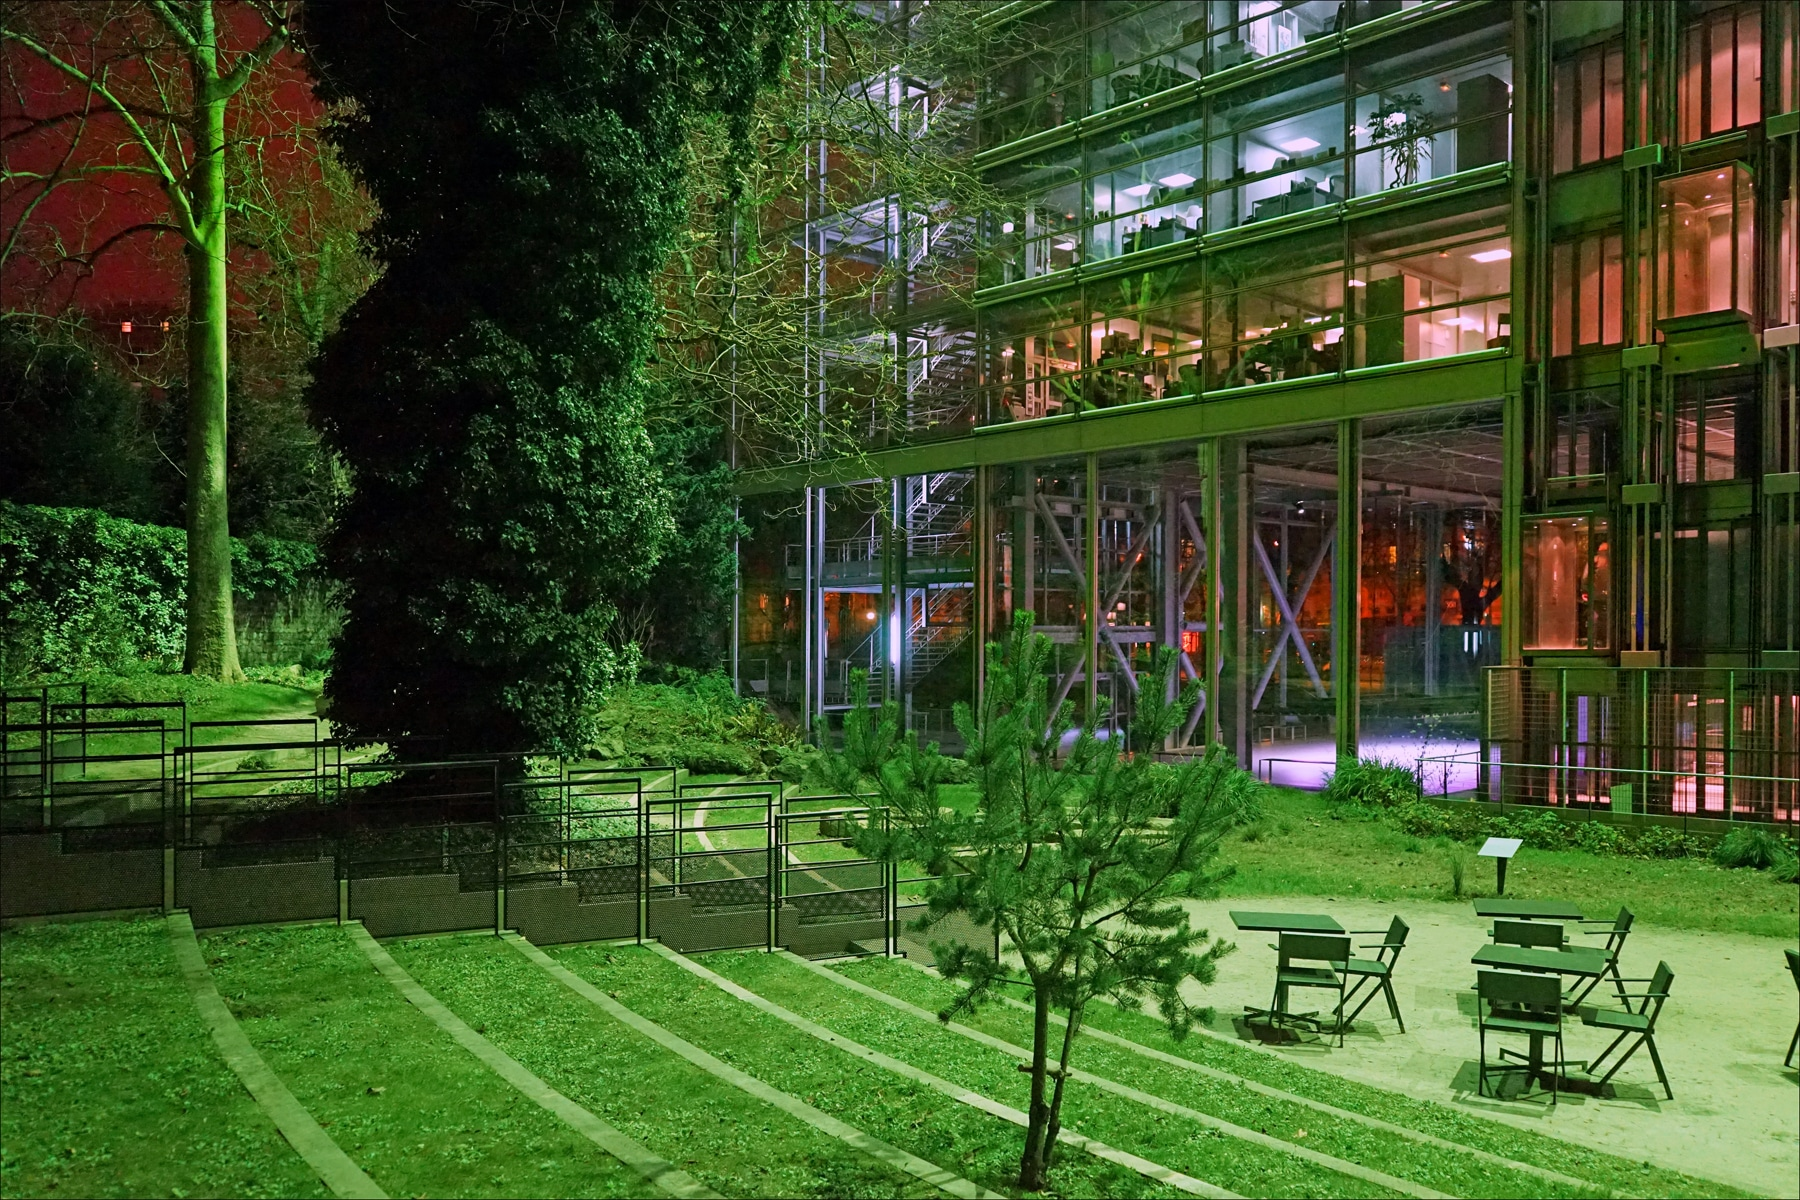 La Fondation Cartier pour lart contemporain 15907035710